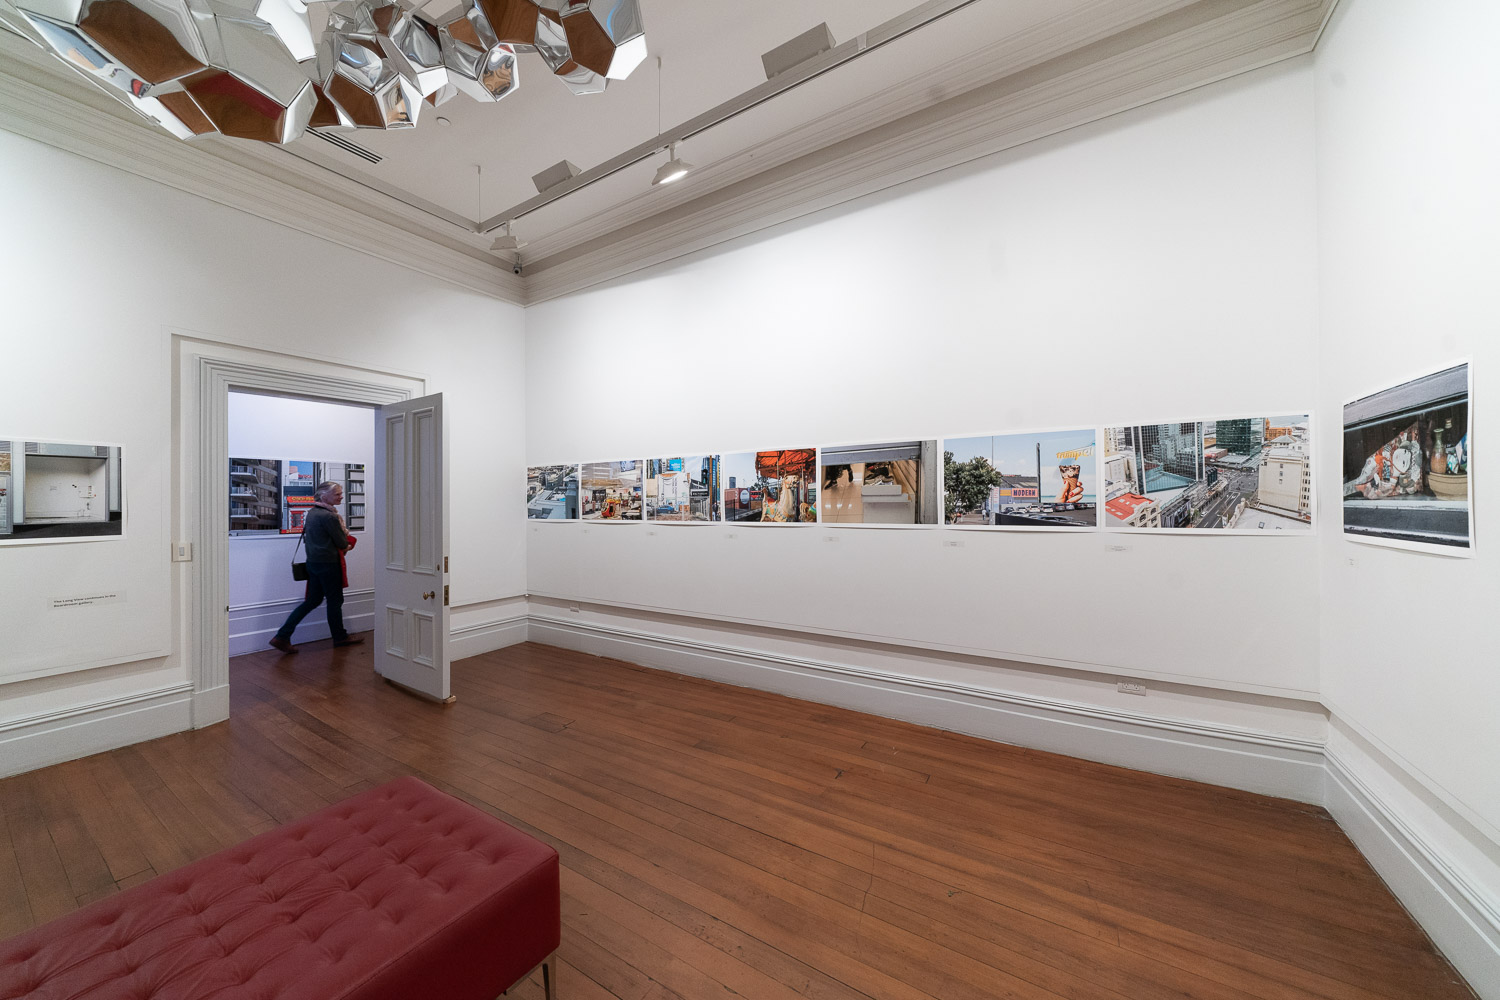 Installation view of the exhibition 'The Long View' at Pah Homestead, 10 June 2018. Photo by Geoff Short